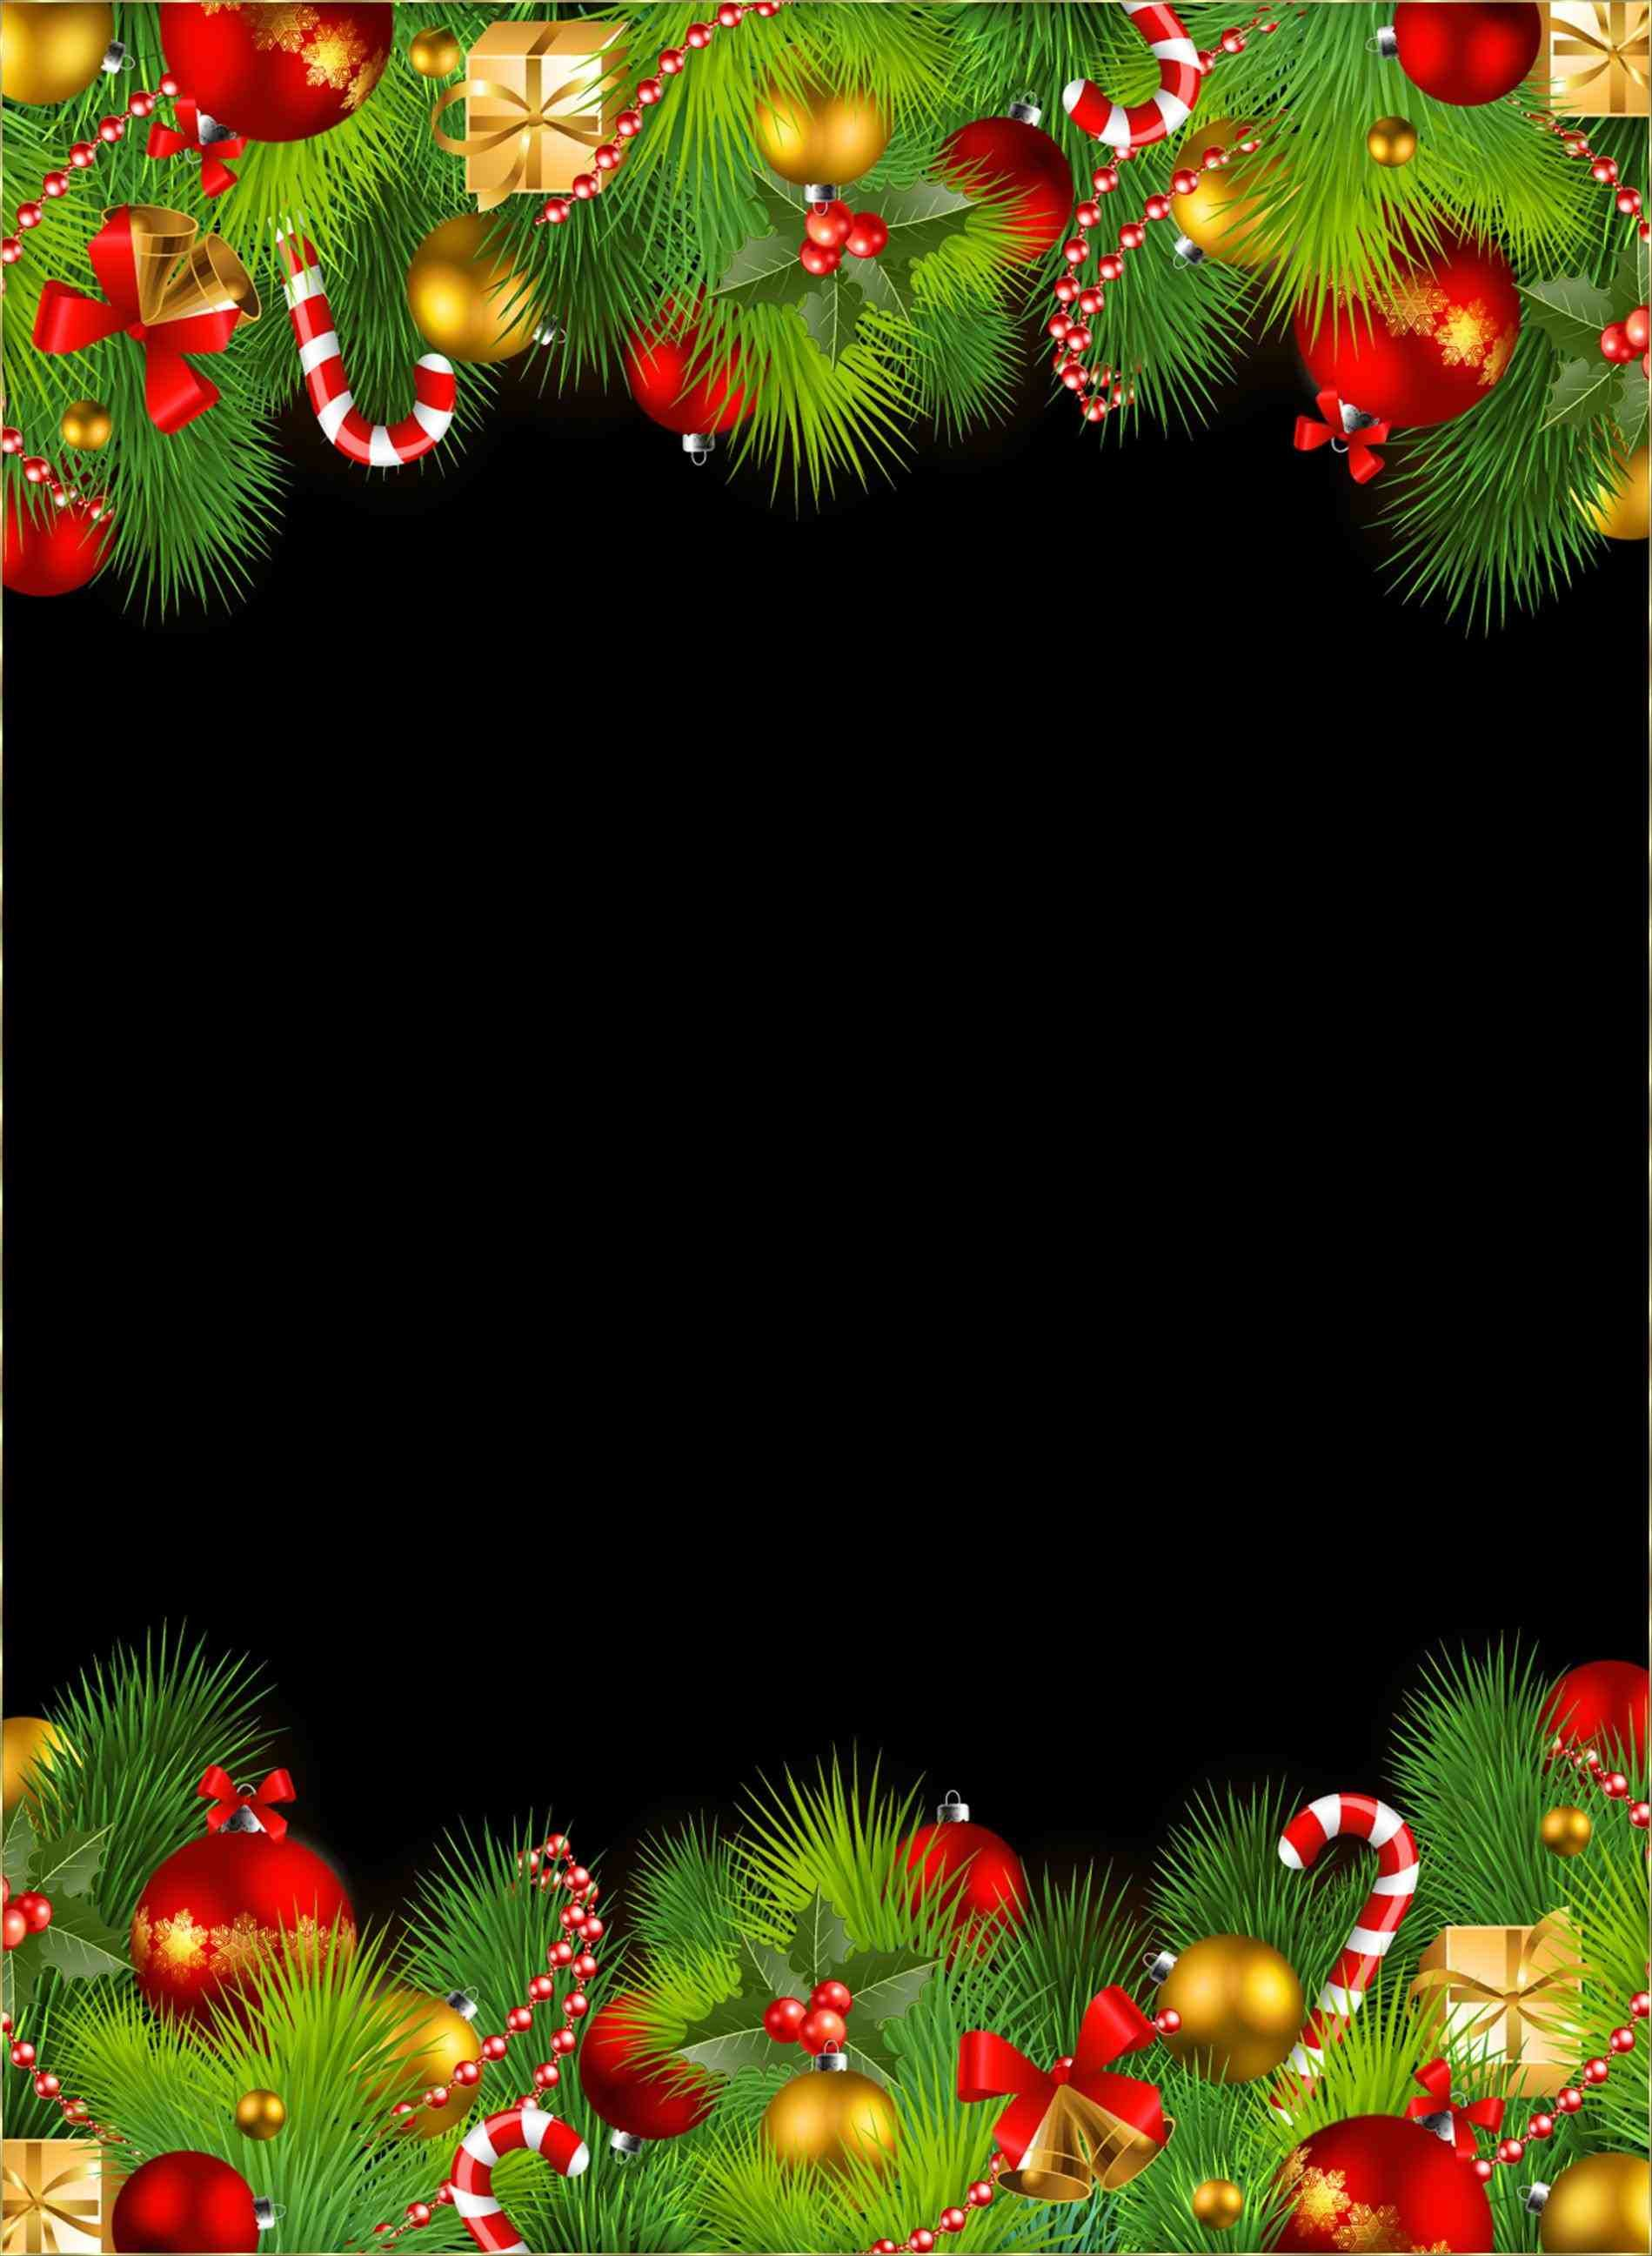 Xmast Site Christmas Wallpaper Backgrounds Free Christmas Backgrounds Christmas Border